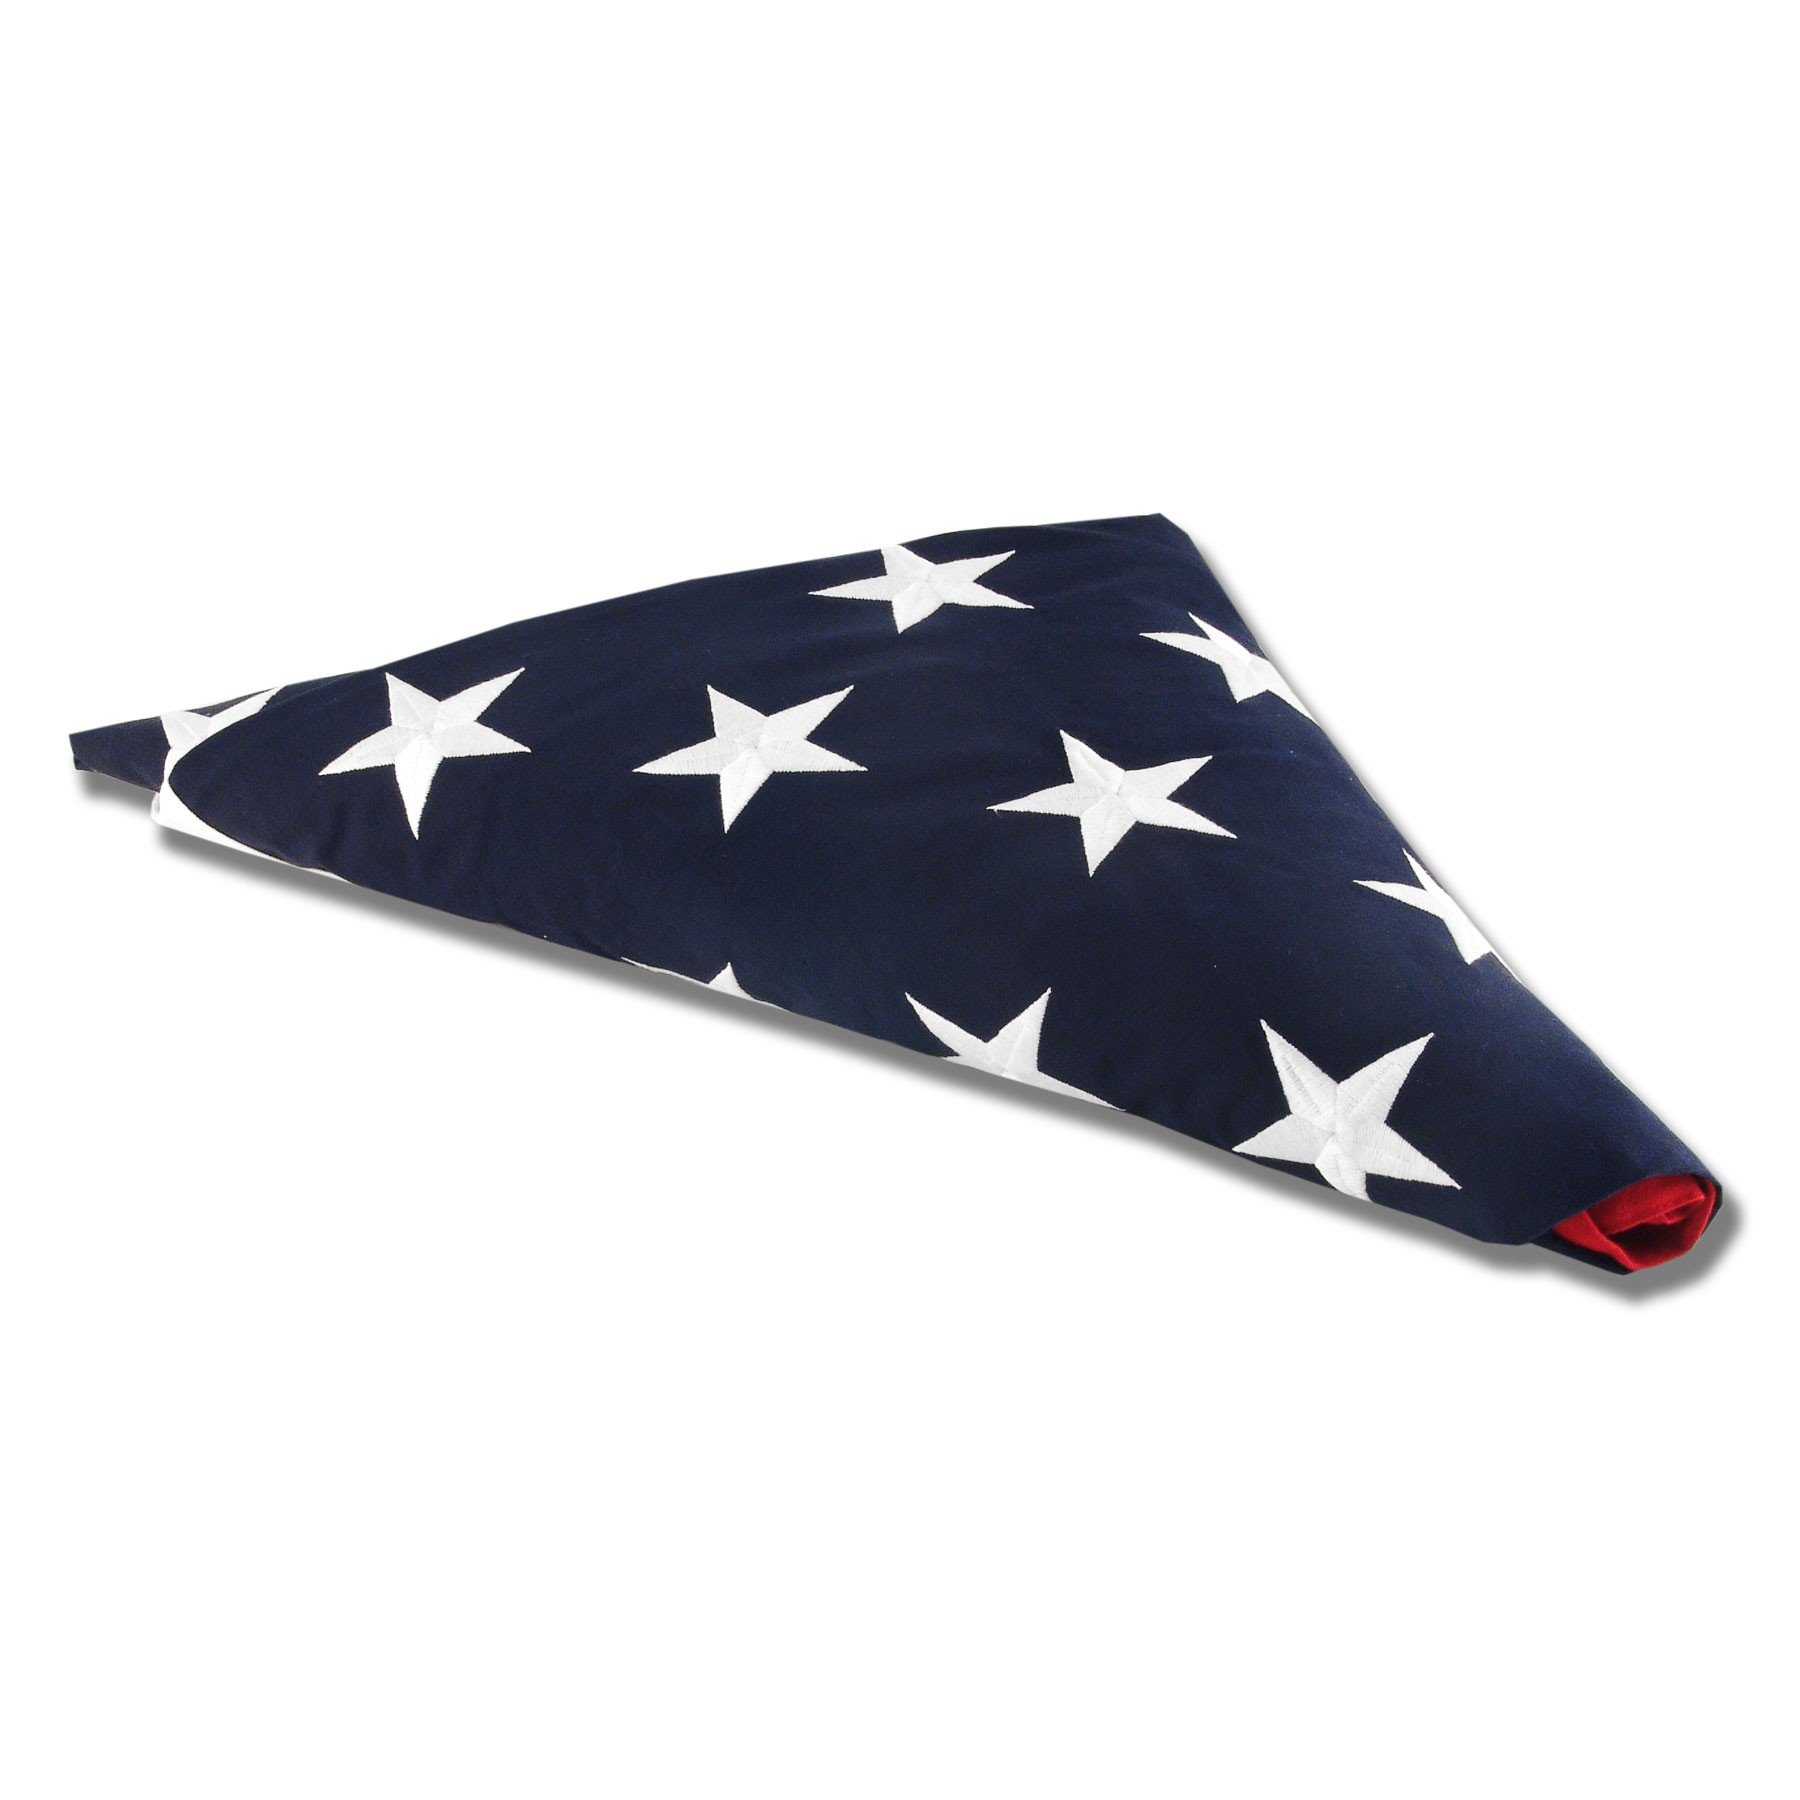 Valley Forge American Flag 5ft x 9.5ft Sewn Nylon Flag by Valley Forge